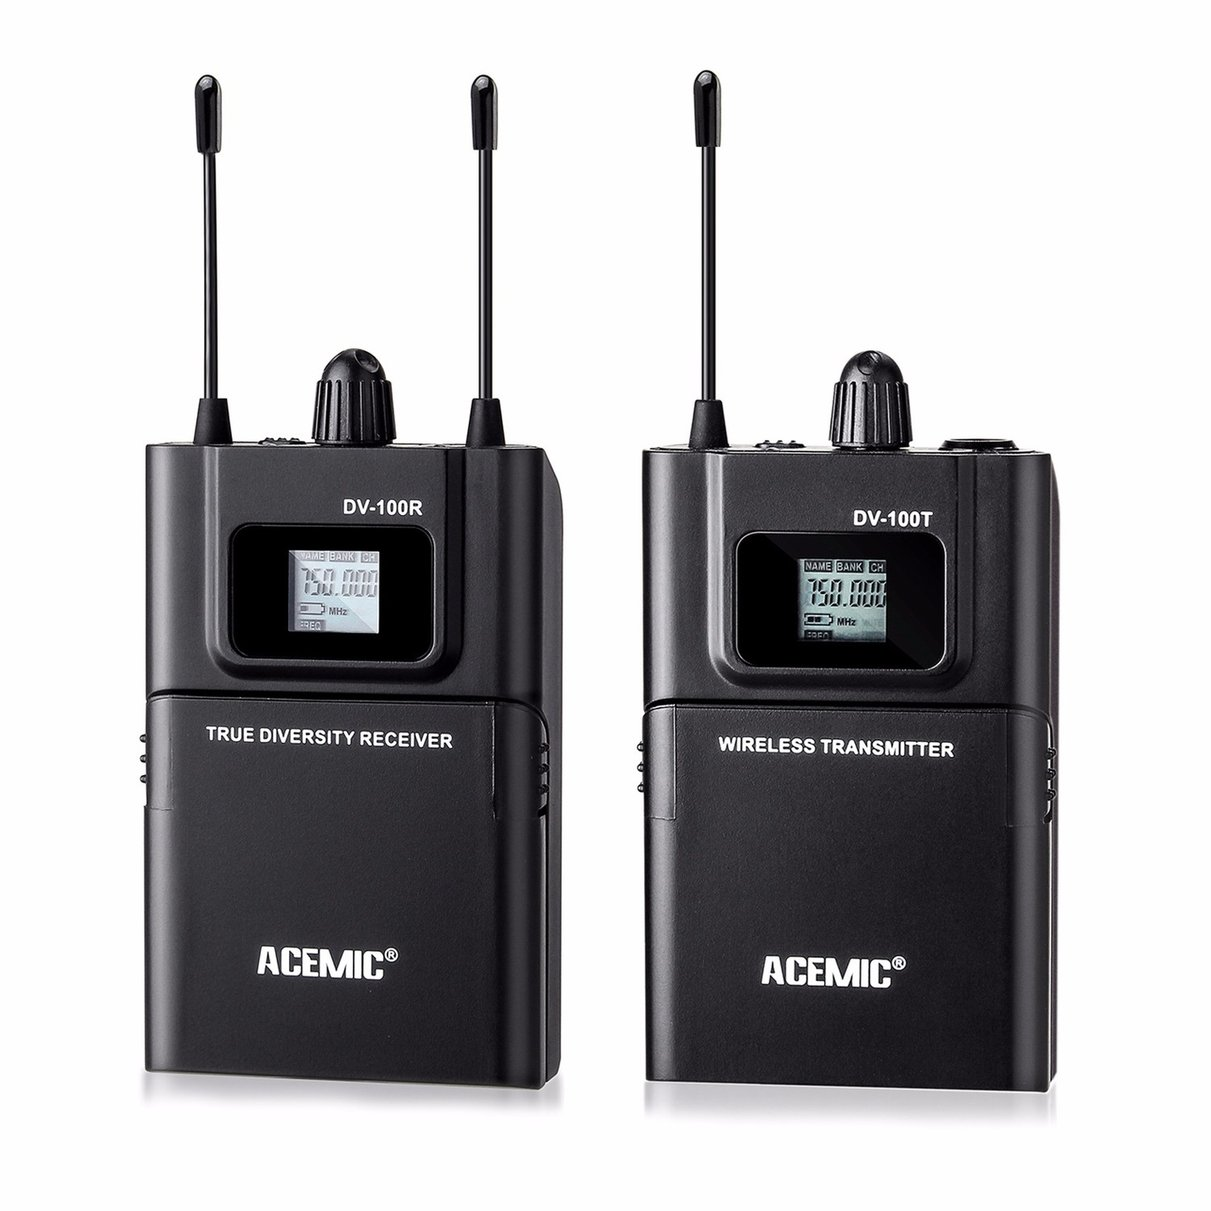 acemic dv 100 transmitter receiver mic true diversity interview wireless microphone system. Black Bedroom Furniture Sets. Home Design Ideas